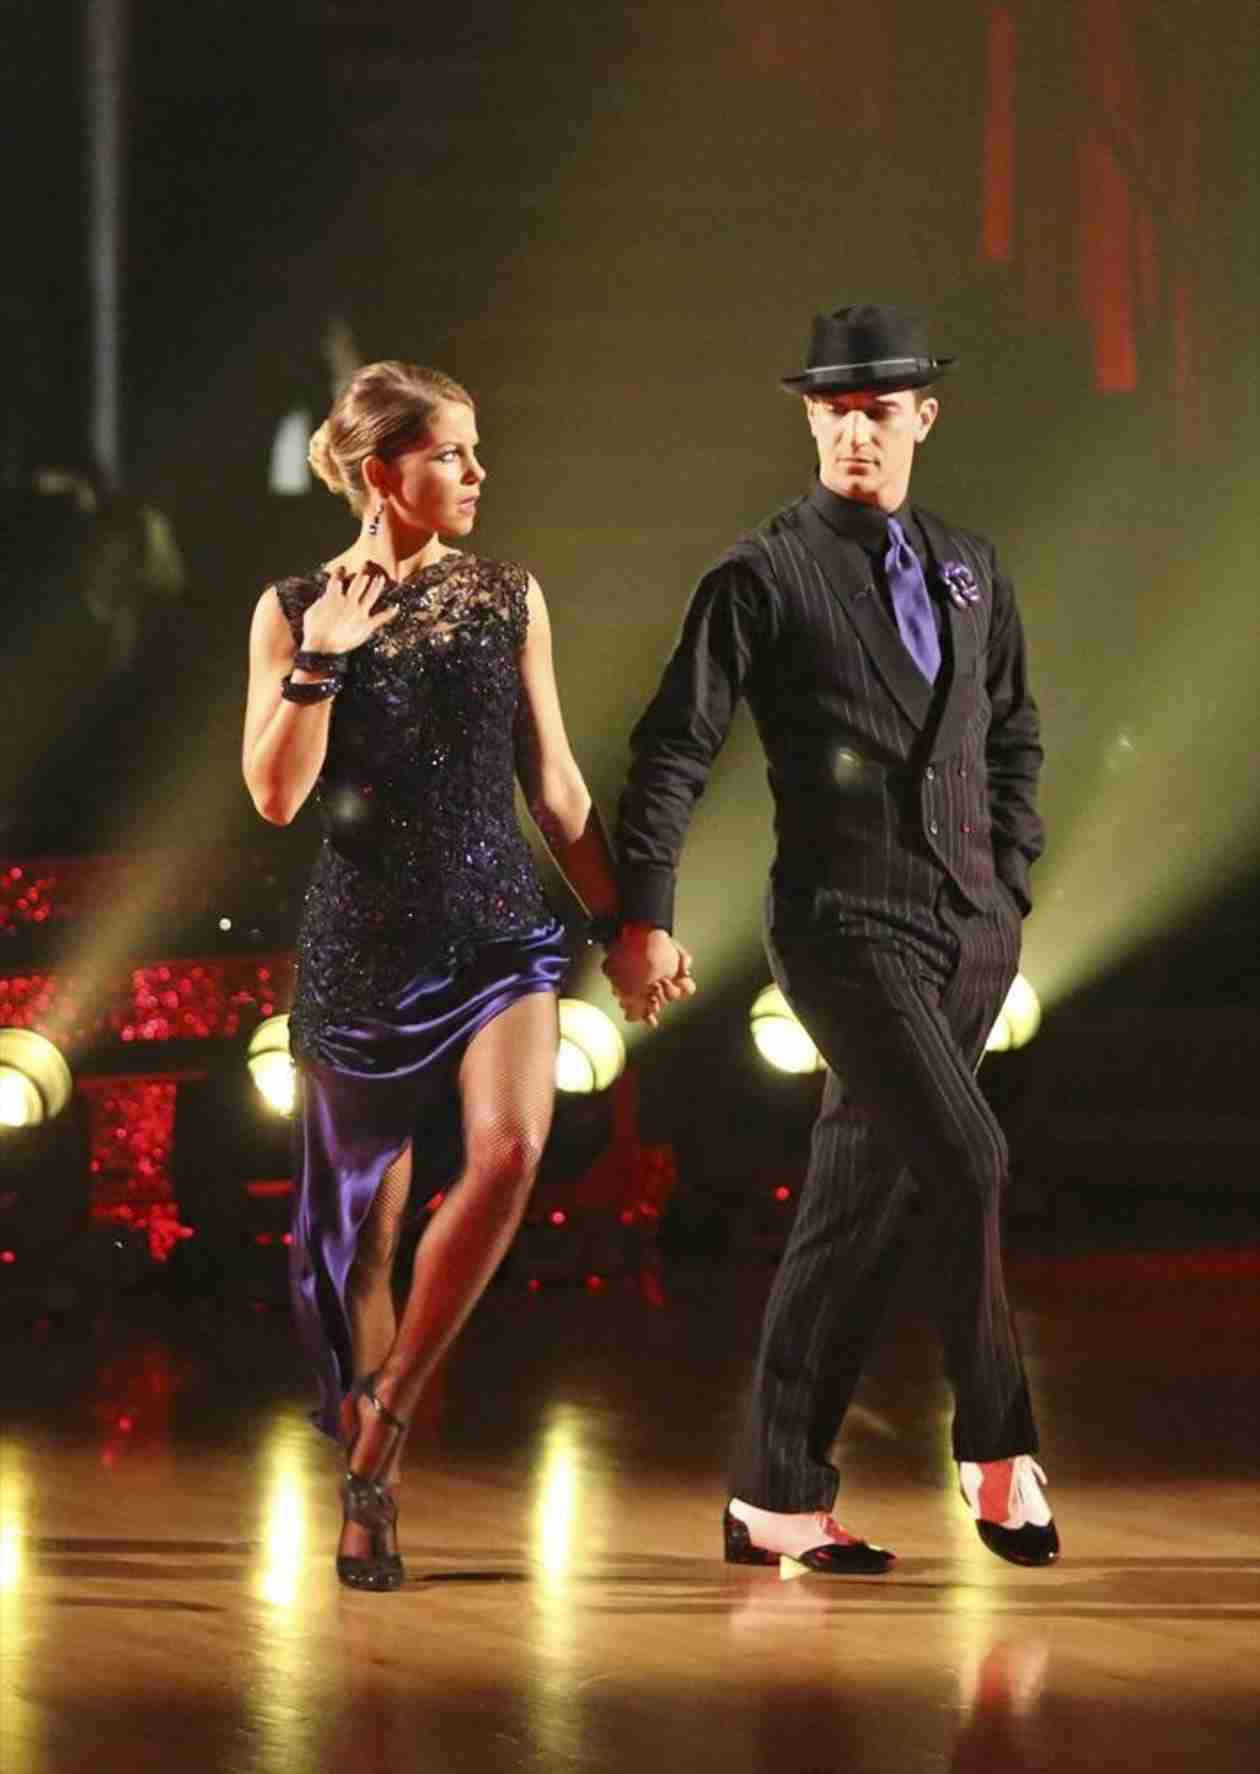 Dancing With the Stars 2014: Candace Cameron Bure and Mark Ballas's Week 9 Viennese Waltz (VIDEO)